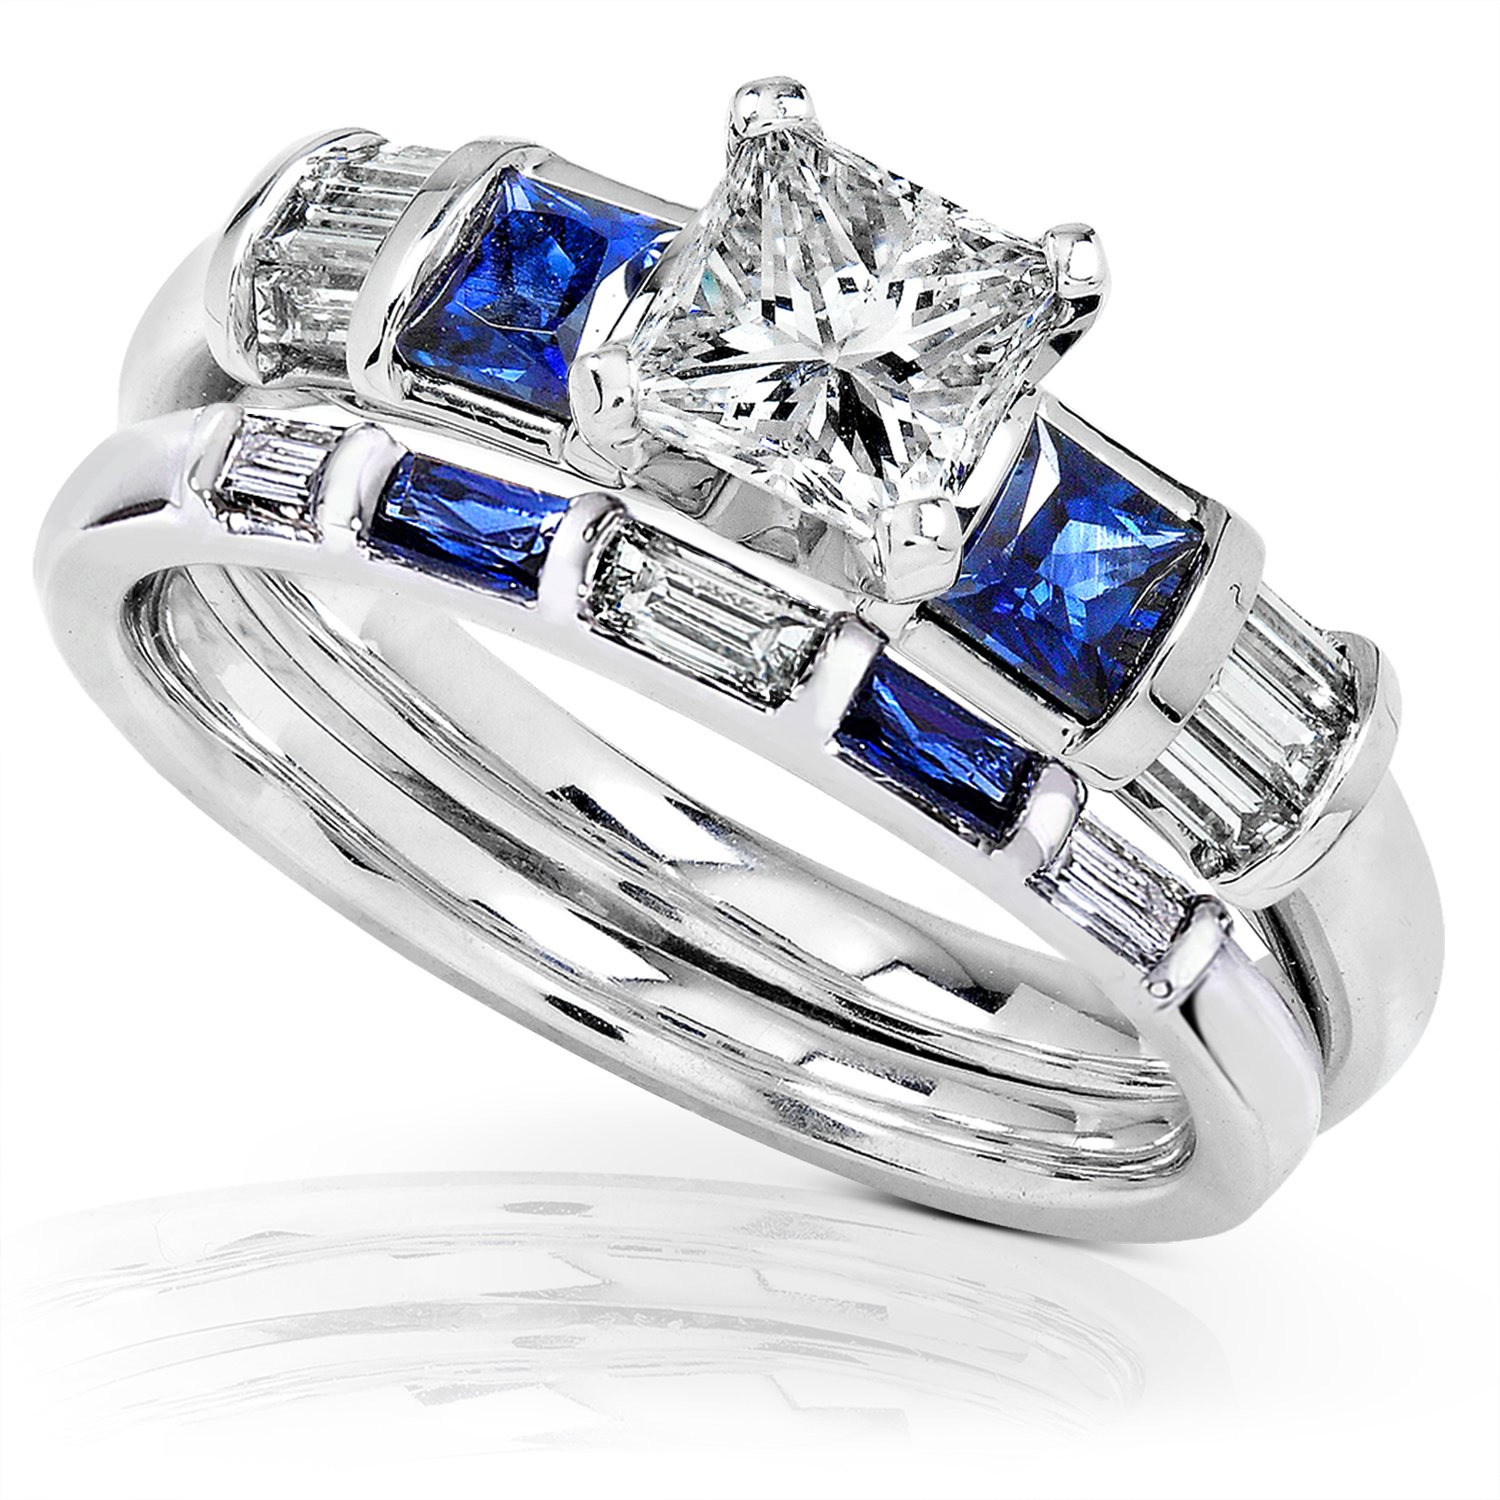 blue sapphire diamond wedding rings set 1 1 2 carat